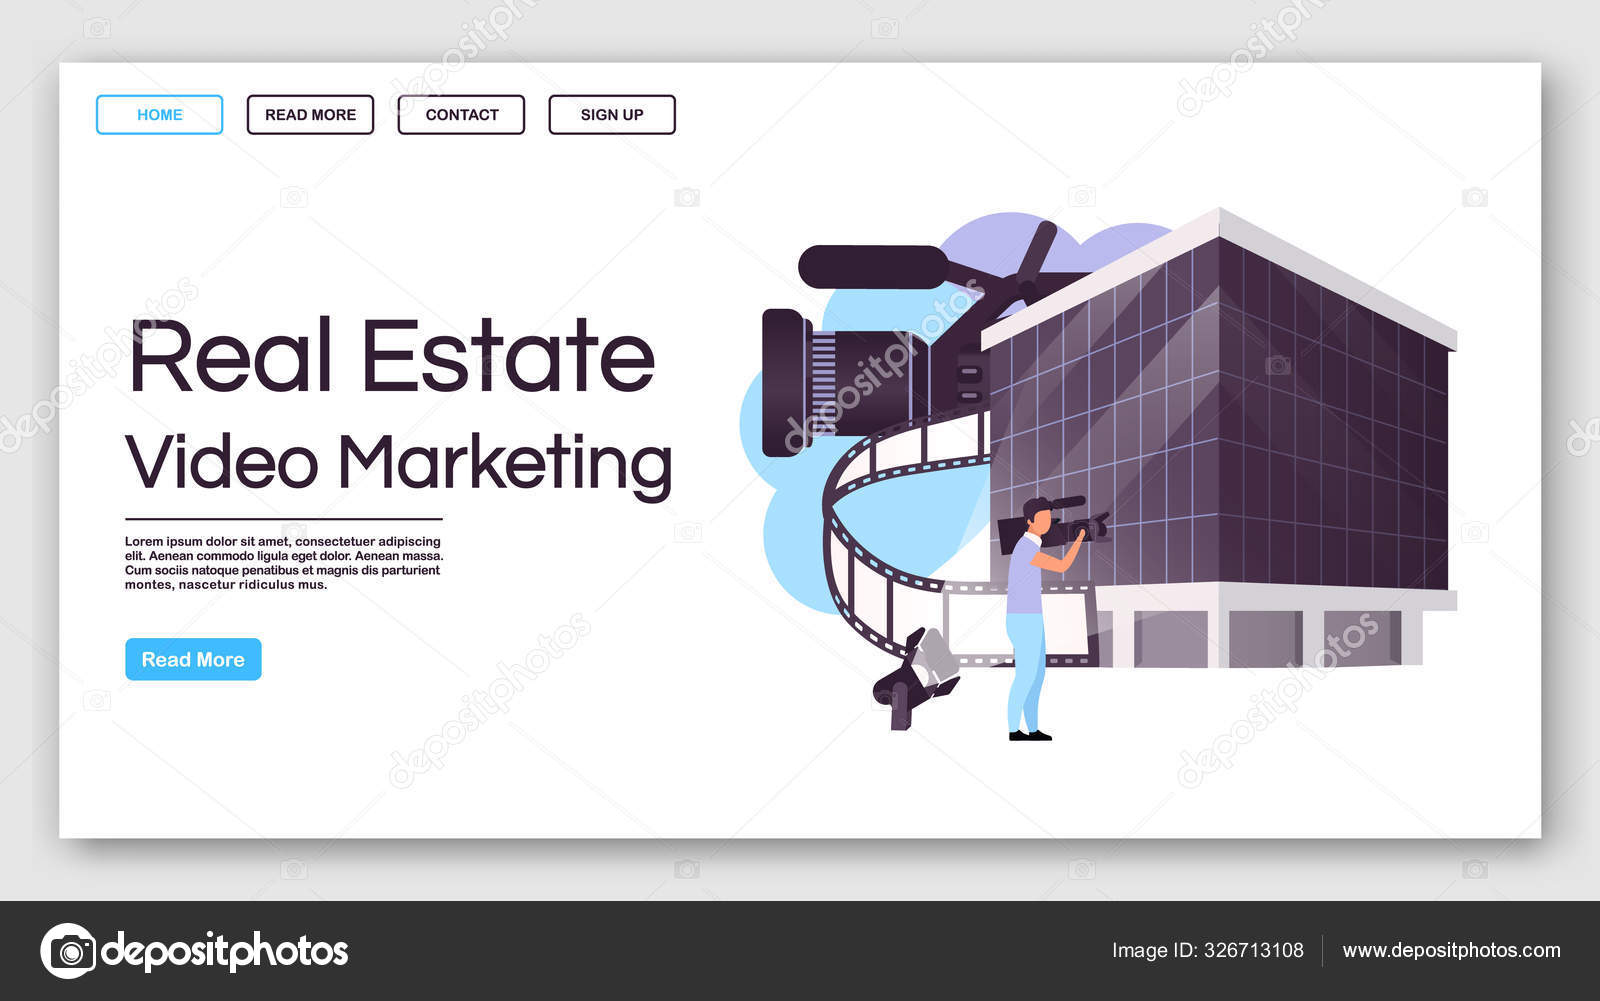 Real Estate Video Marketing Landing Page Vector Template House Advertisement Website Interface Idea With Flat Illustrations Building Commercial Homepage Layout Web Banner Webpage Cartoon Concept Stock Vector C Ntlstudio 326713108